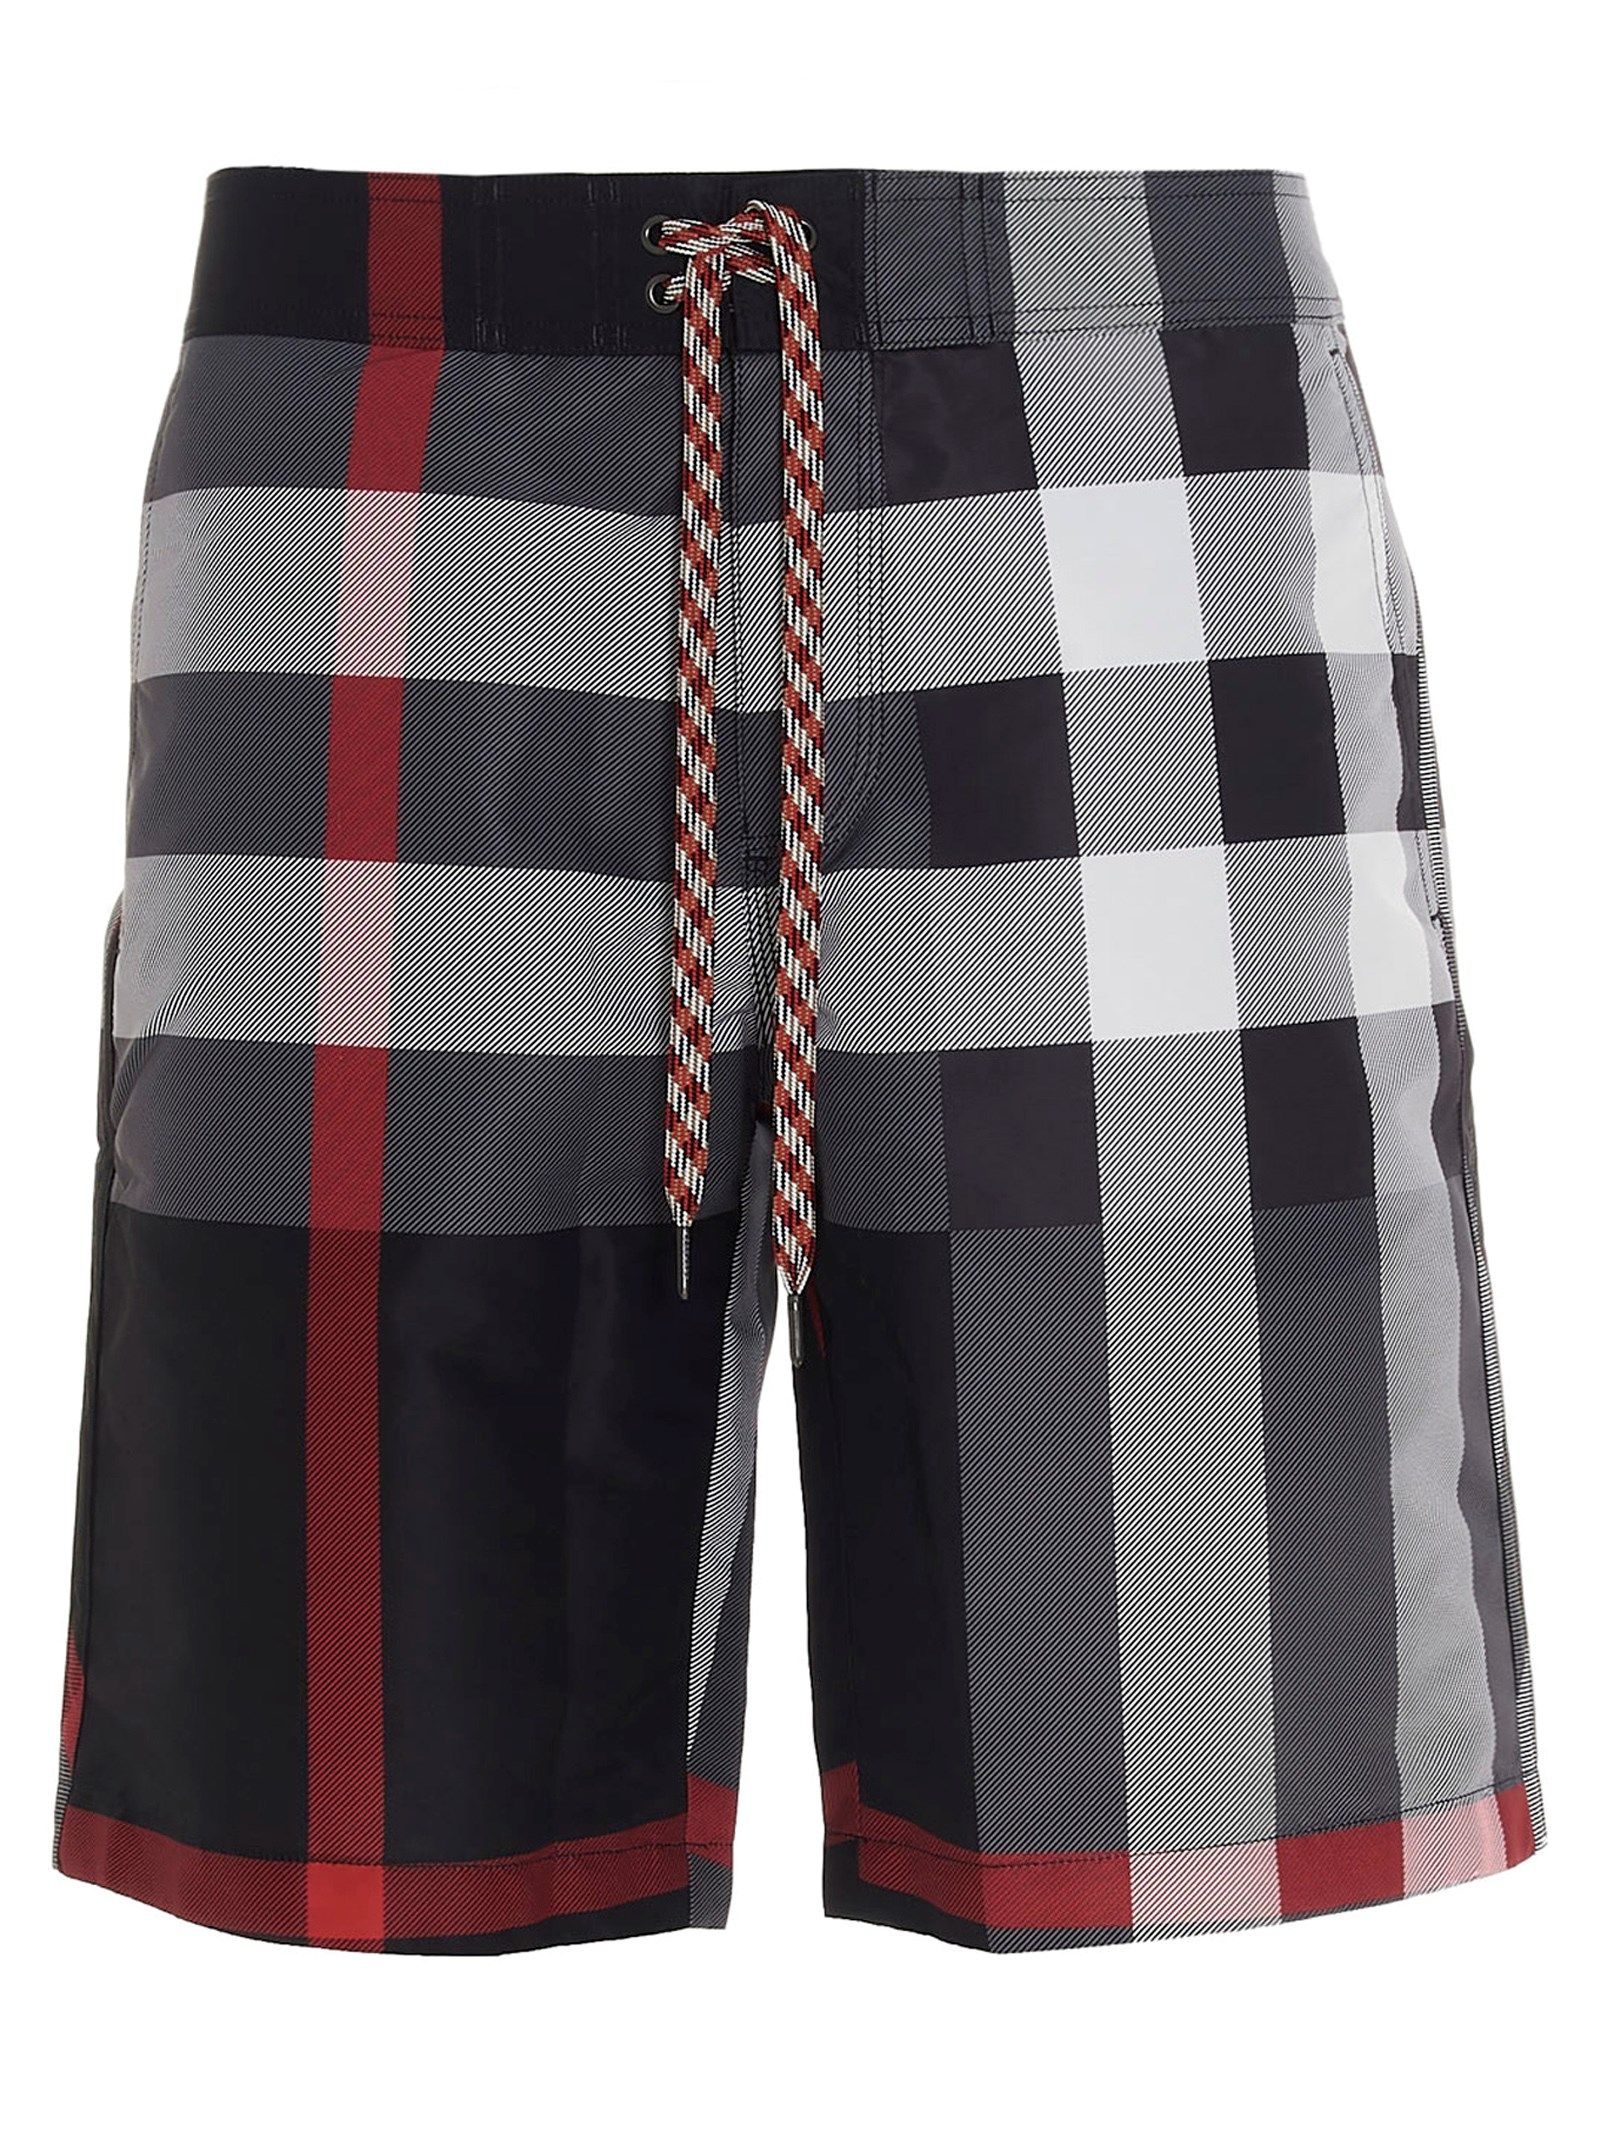 Burberry BURBERRY MEN'S MULTICOLOR OTHER MATERIALS TRUNKS